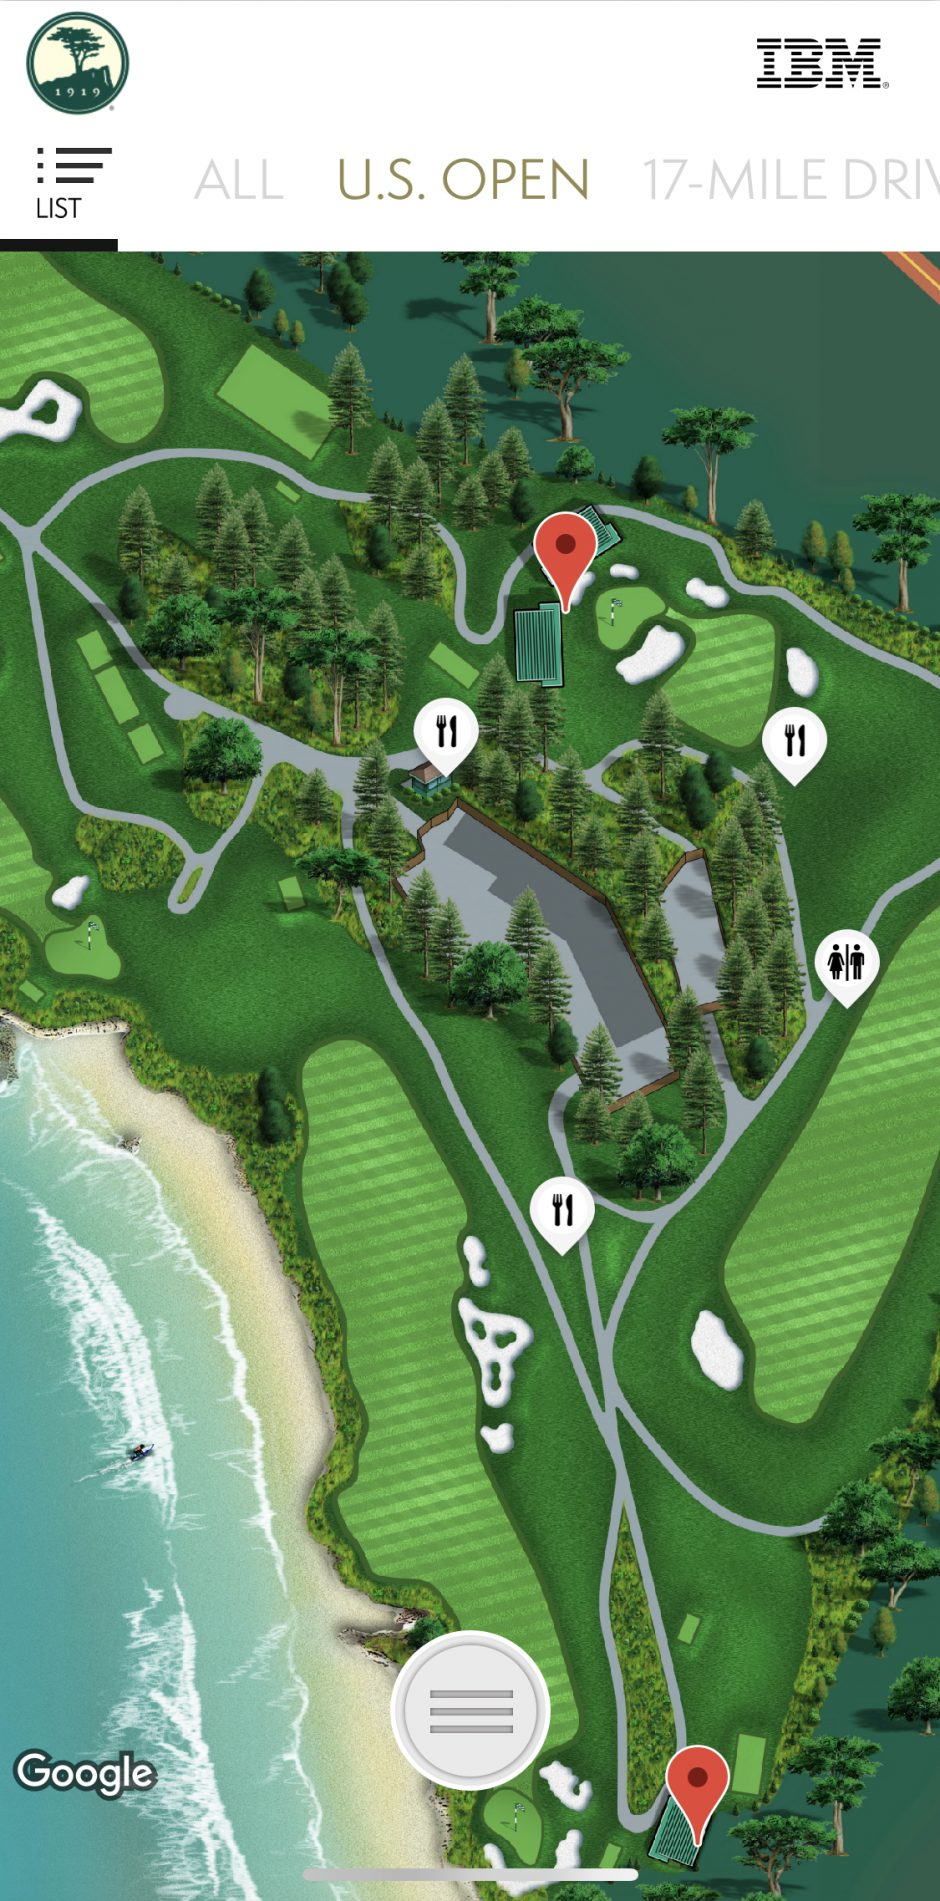 Pebble Beach Us Open Map Where to Eat: a Guide to U.S. Open Concessions